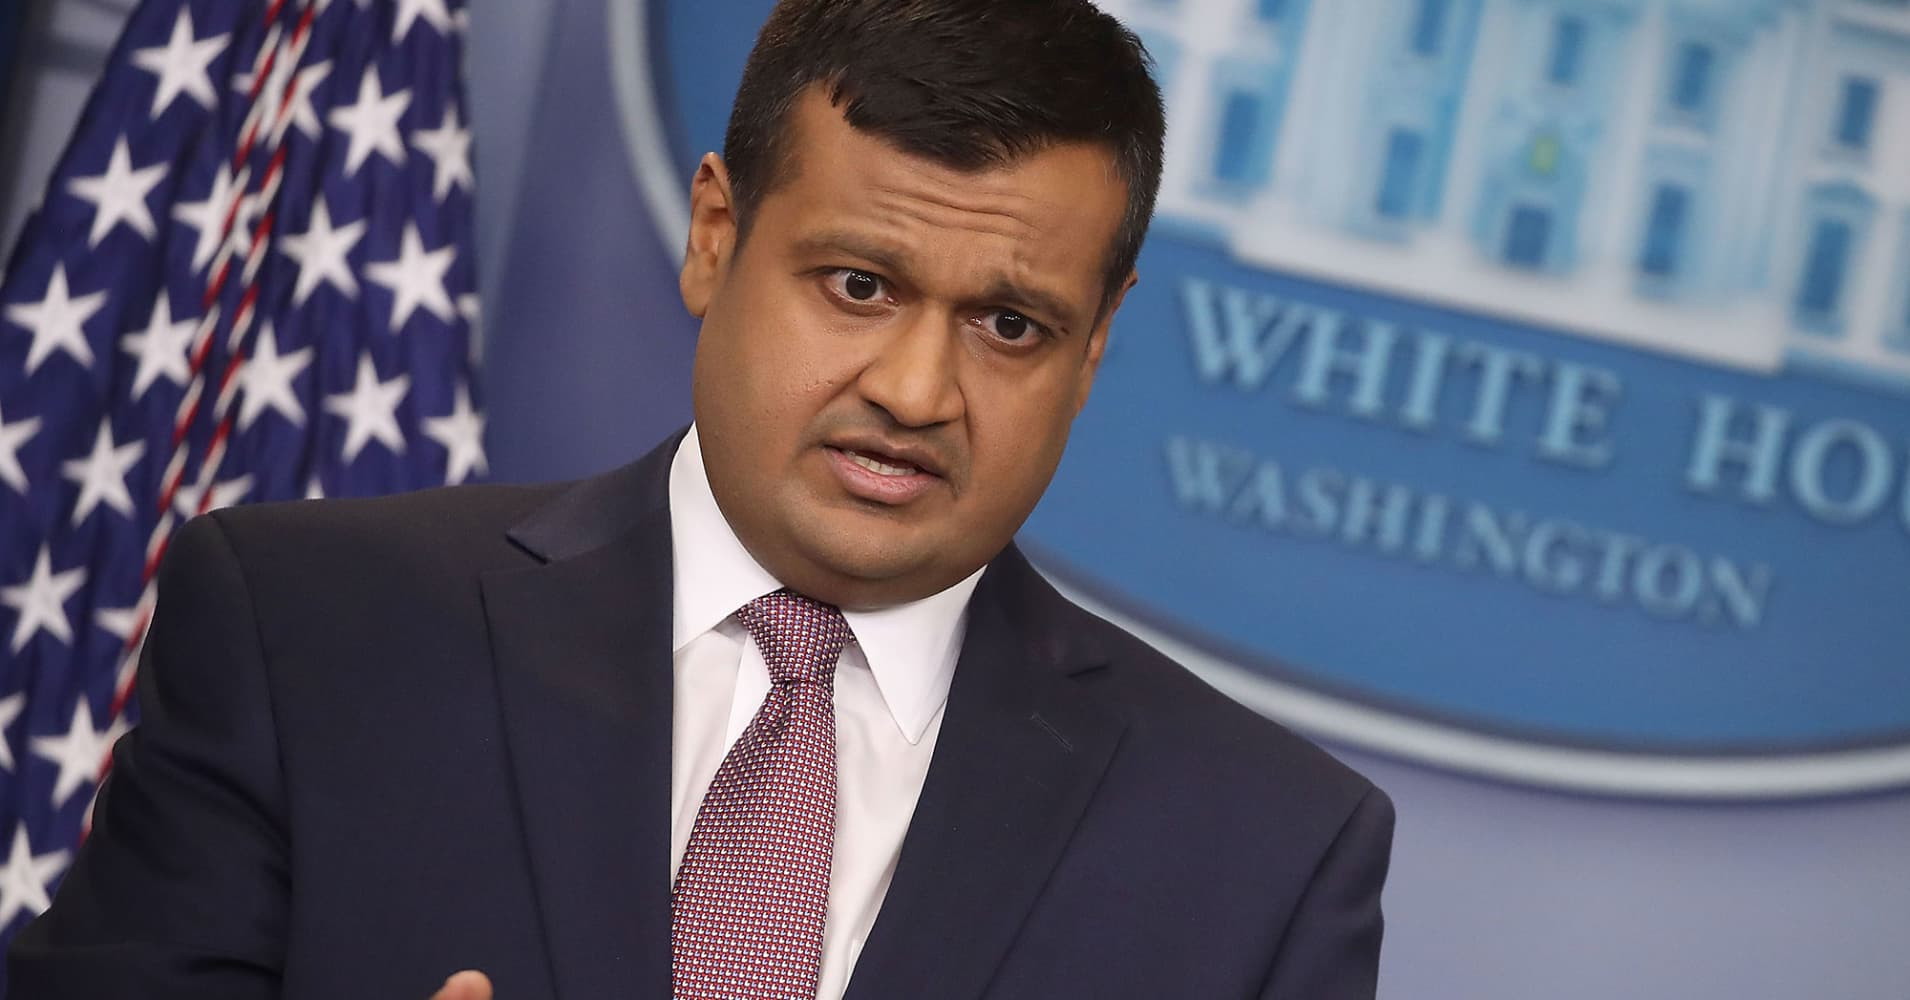 Six White House officials violated the Hatch Act, agency finds